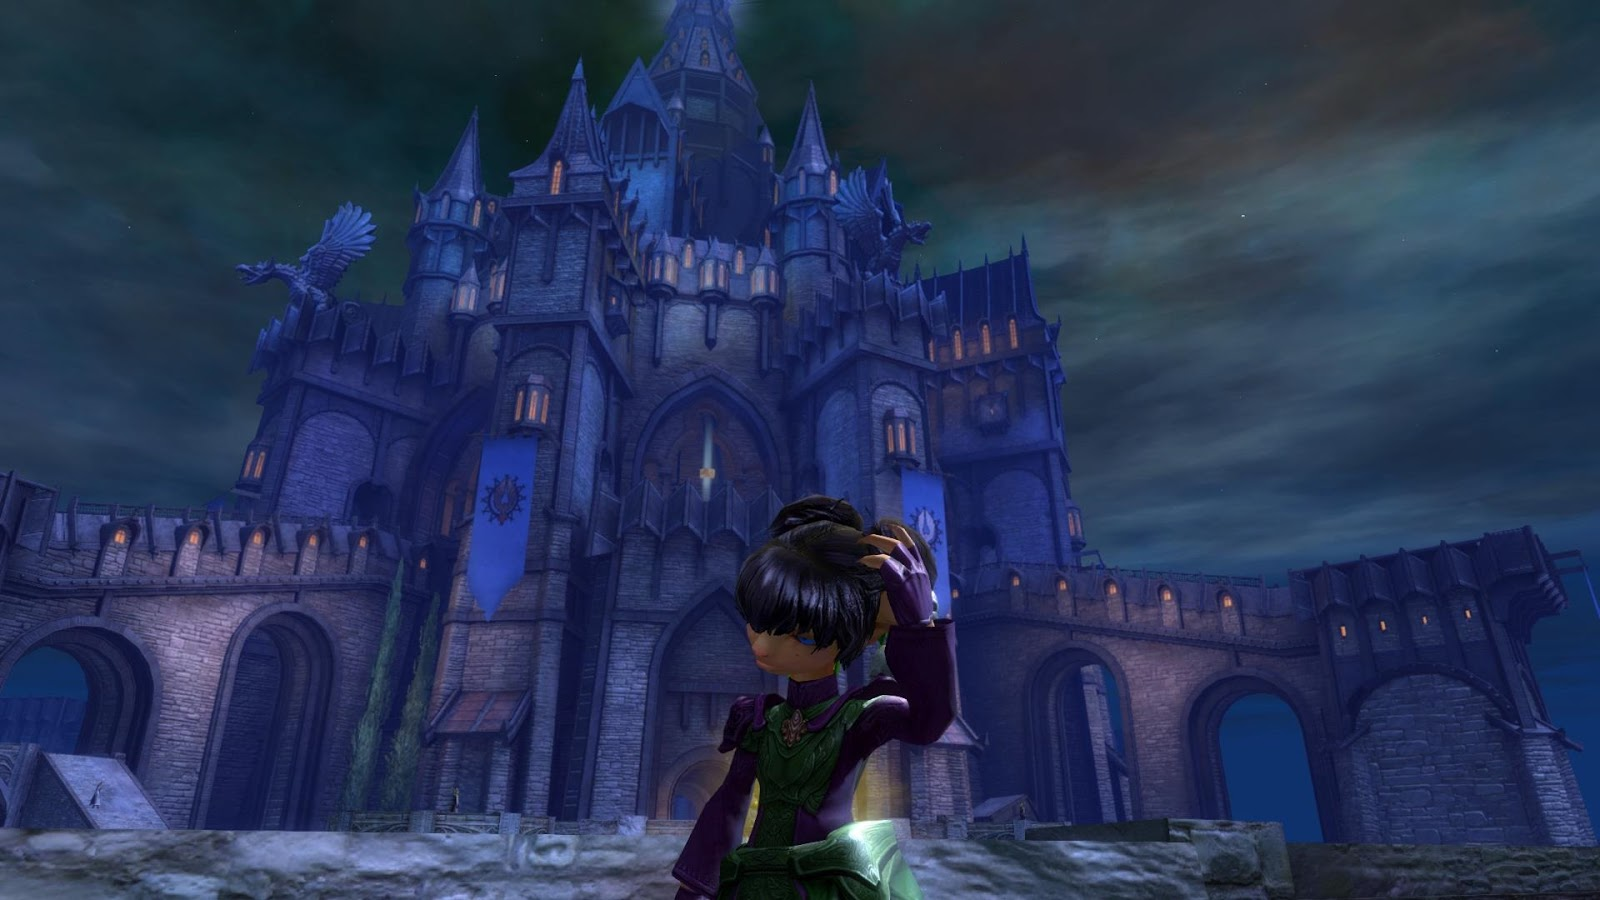 Guild wars 2 gw2 darkened desires gw2 fashion - Keen Has A Short Post Up Today Focusing On Everquest S Enchanter Class It Neatly Sums Up The Difference Between Modern Mmos And Those Of A Decade And More